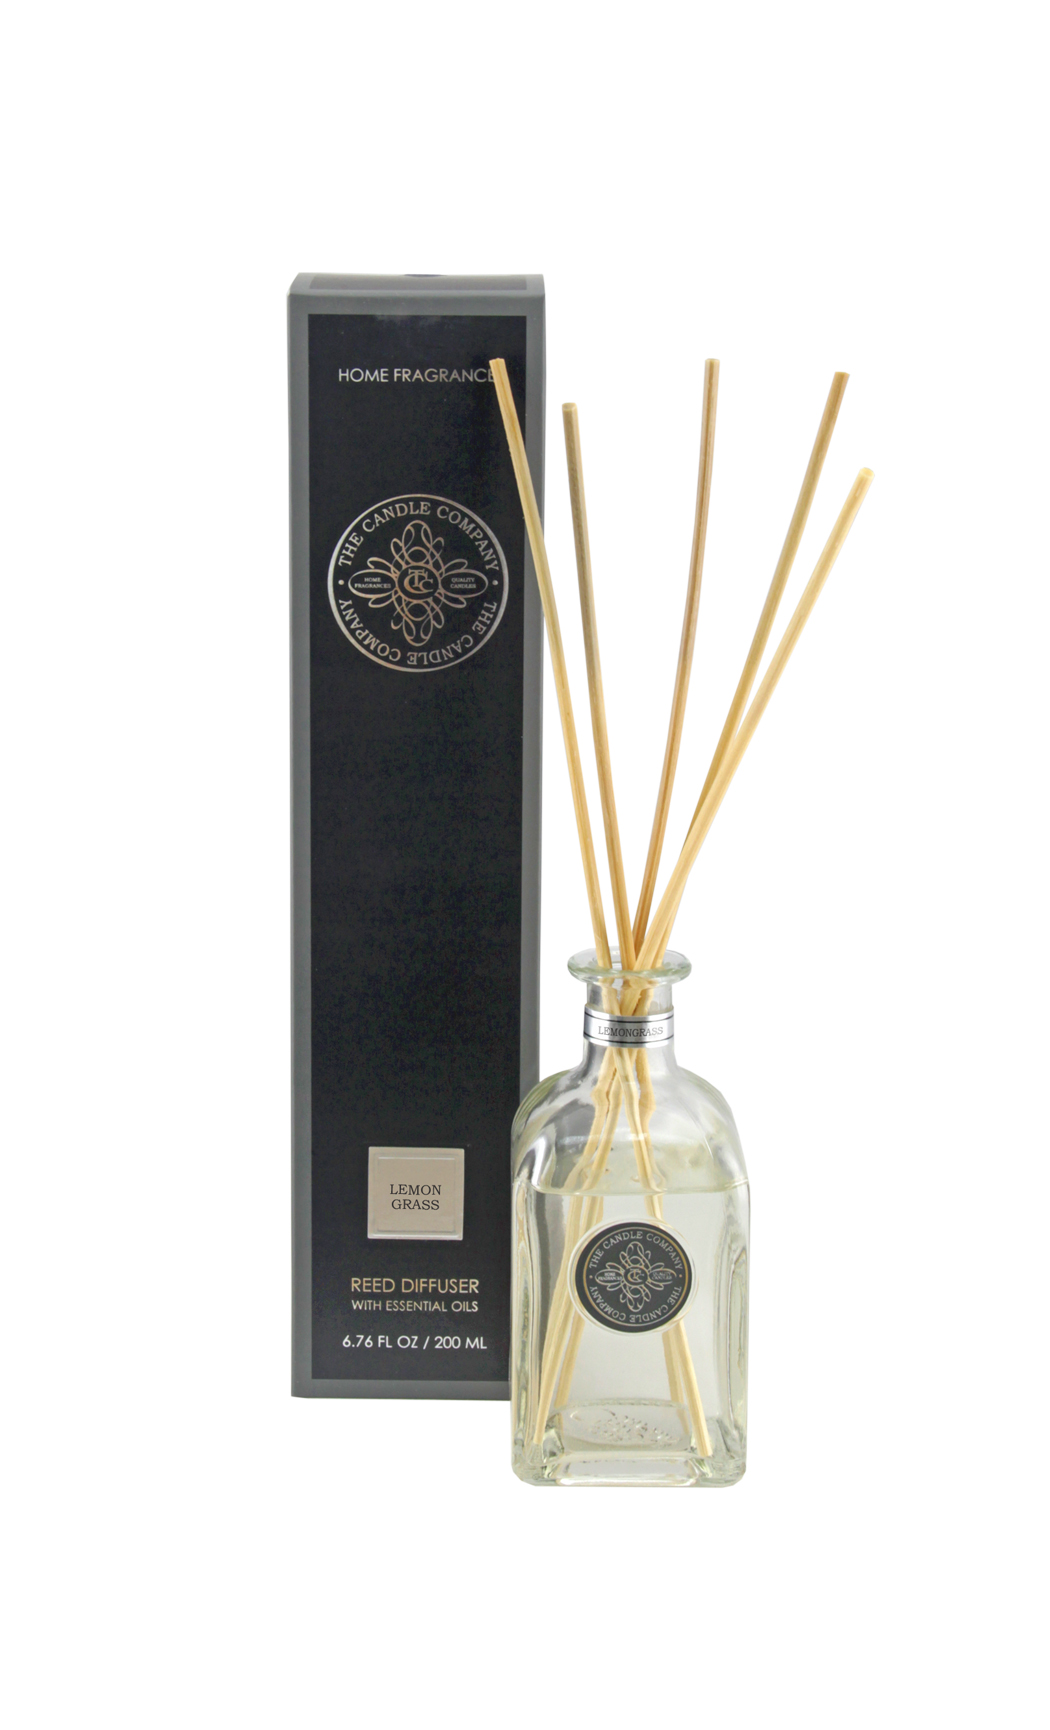 Aromatic Reed Diffuser by The Candle Co. - Bergamot